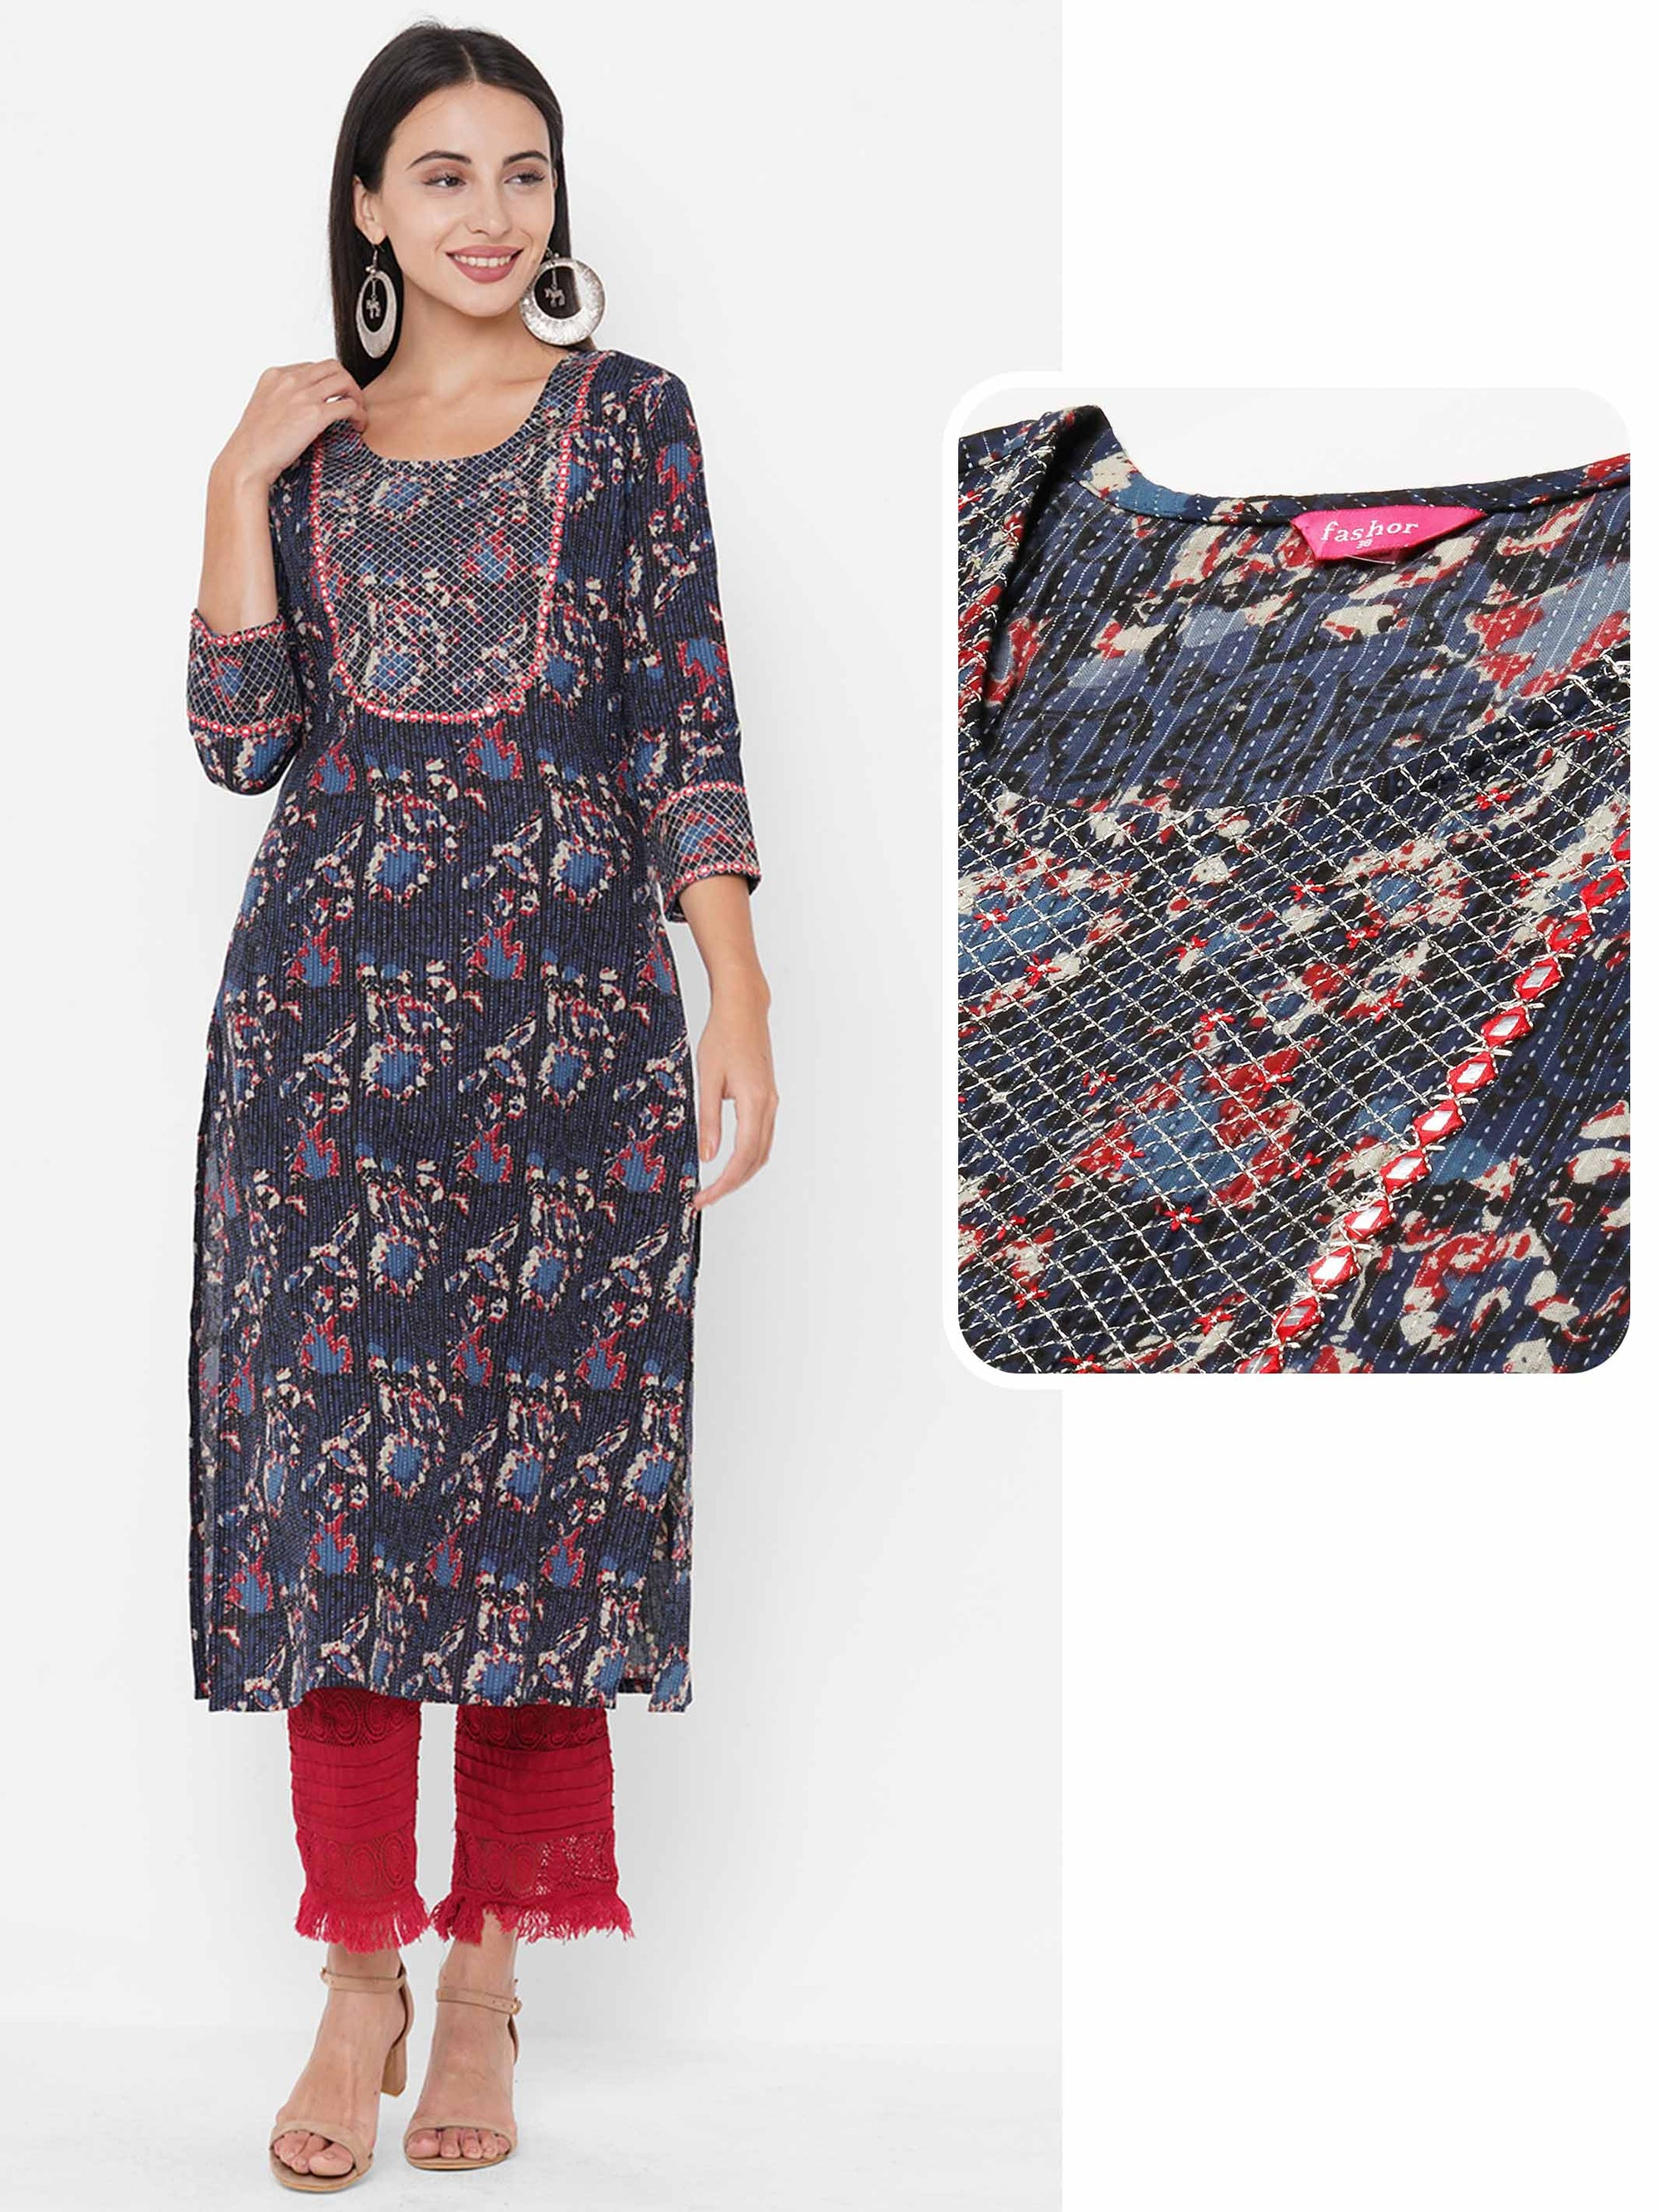 Block Printed & Zari Embroidered on Kantha Woven fabric Kurta - Indigo